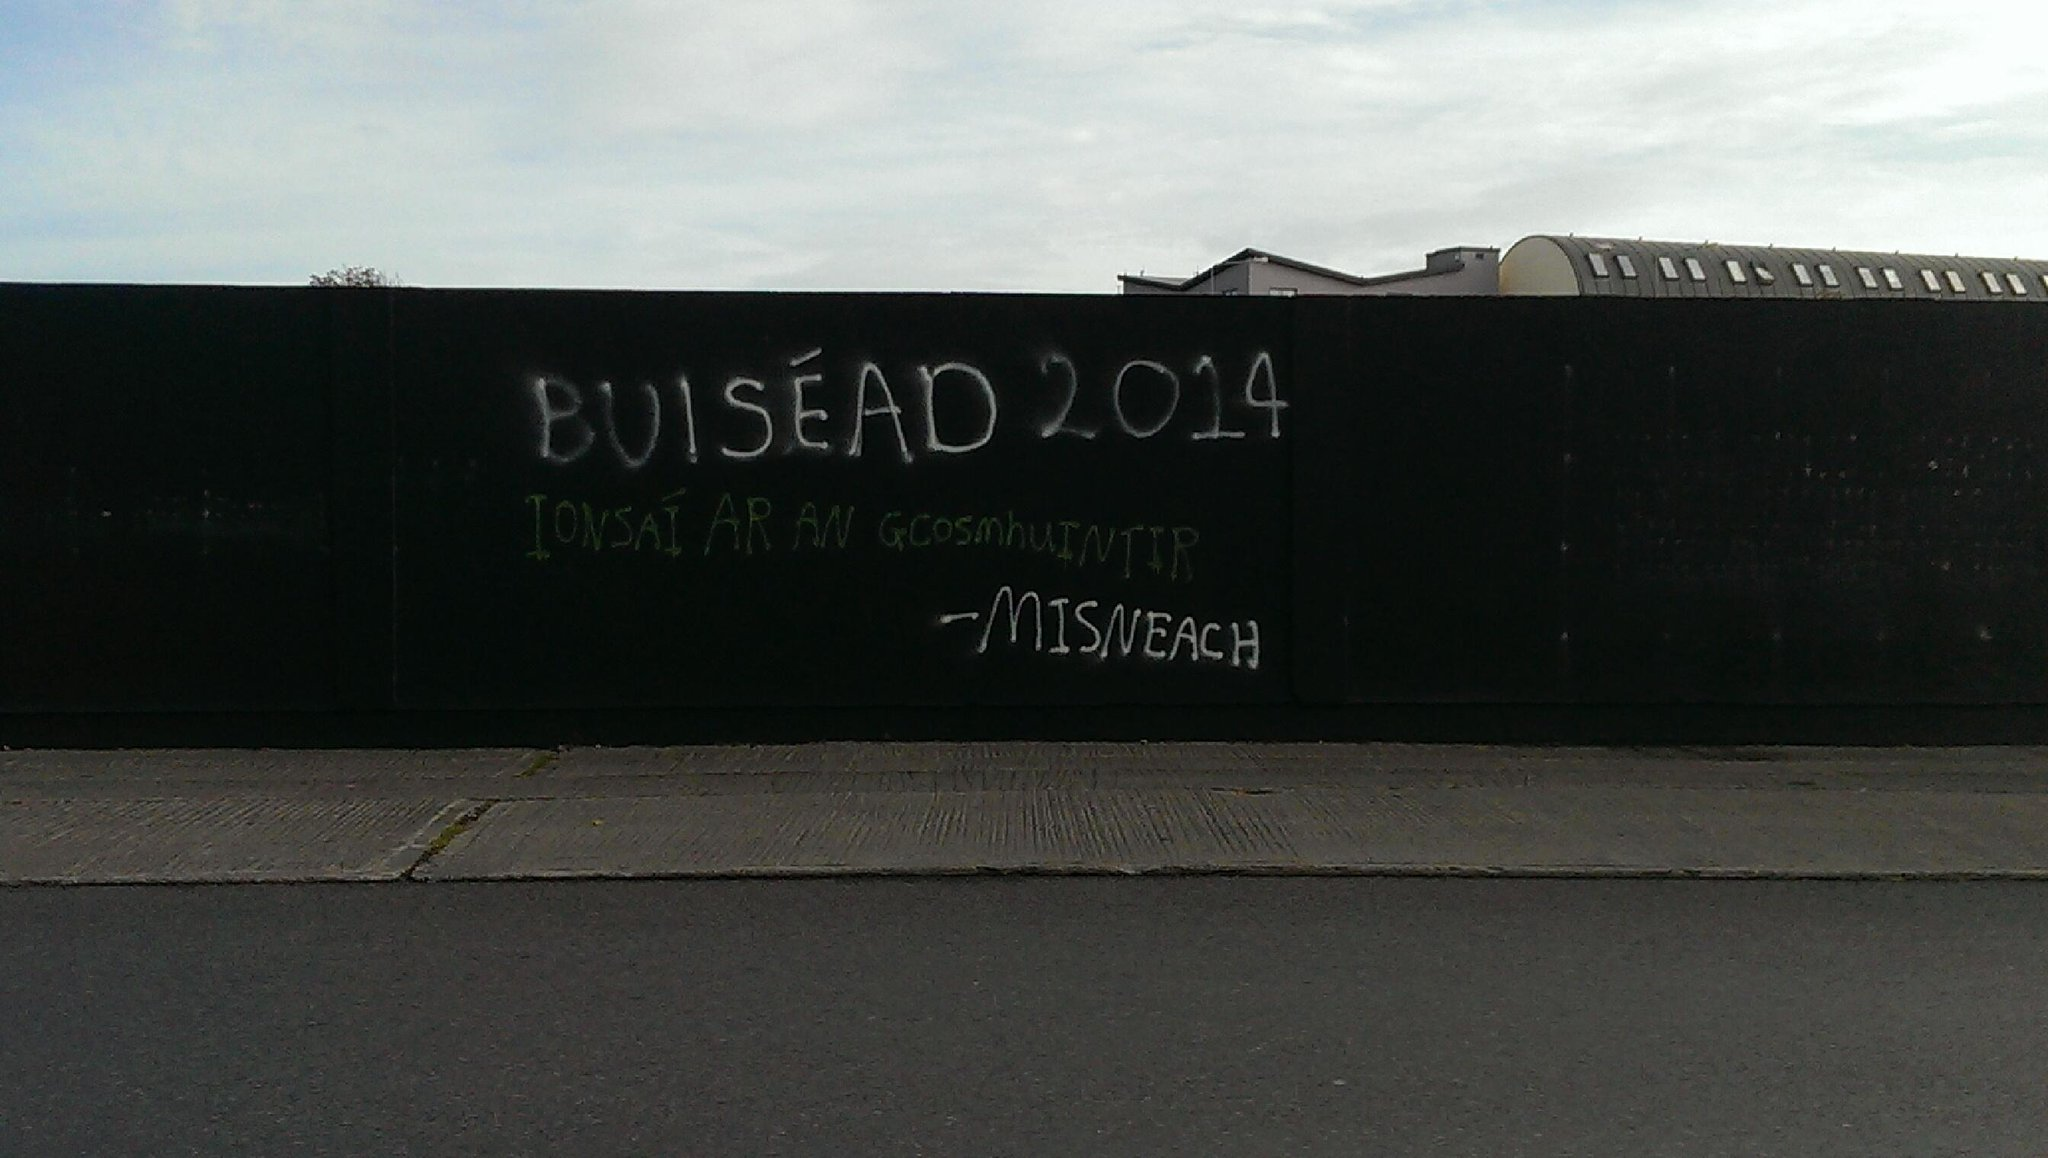 @broadsheet_ie 1 of several admonitions As Gaeilge that popped up around The Docks in Galway overnight. Misteach? http://t.co/7UQIsa74kn